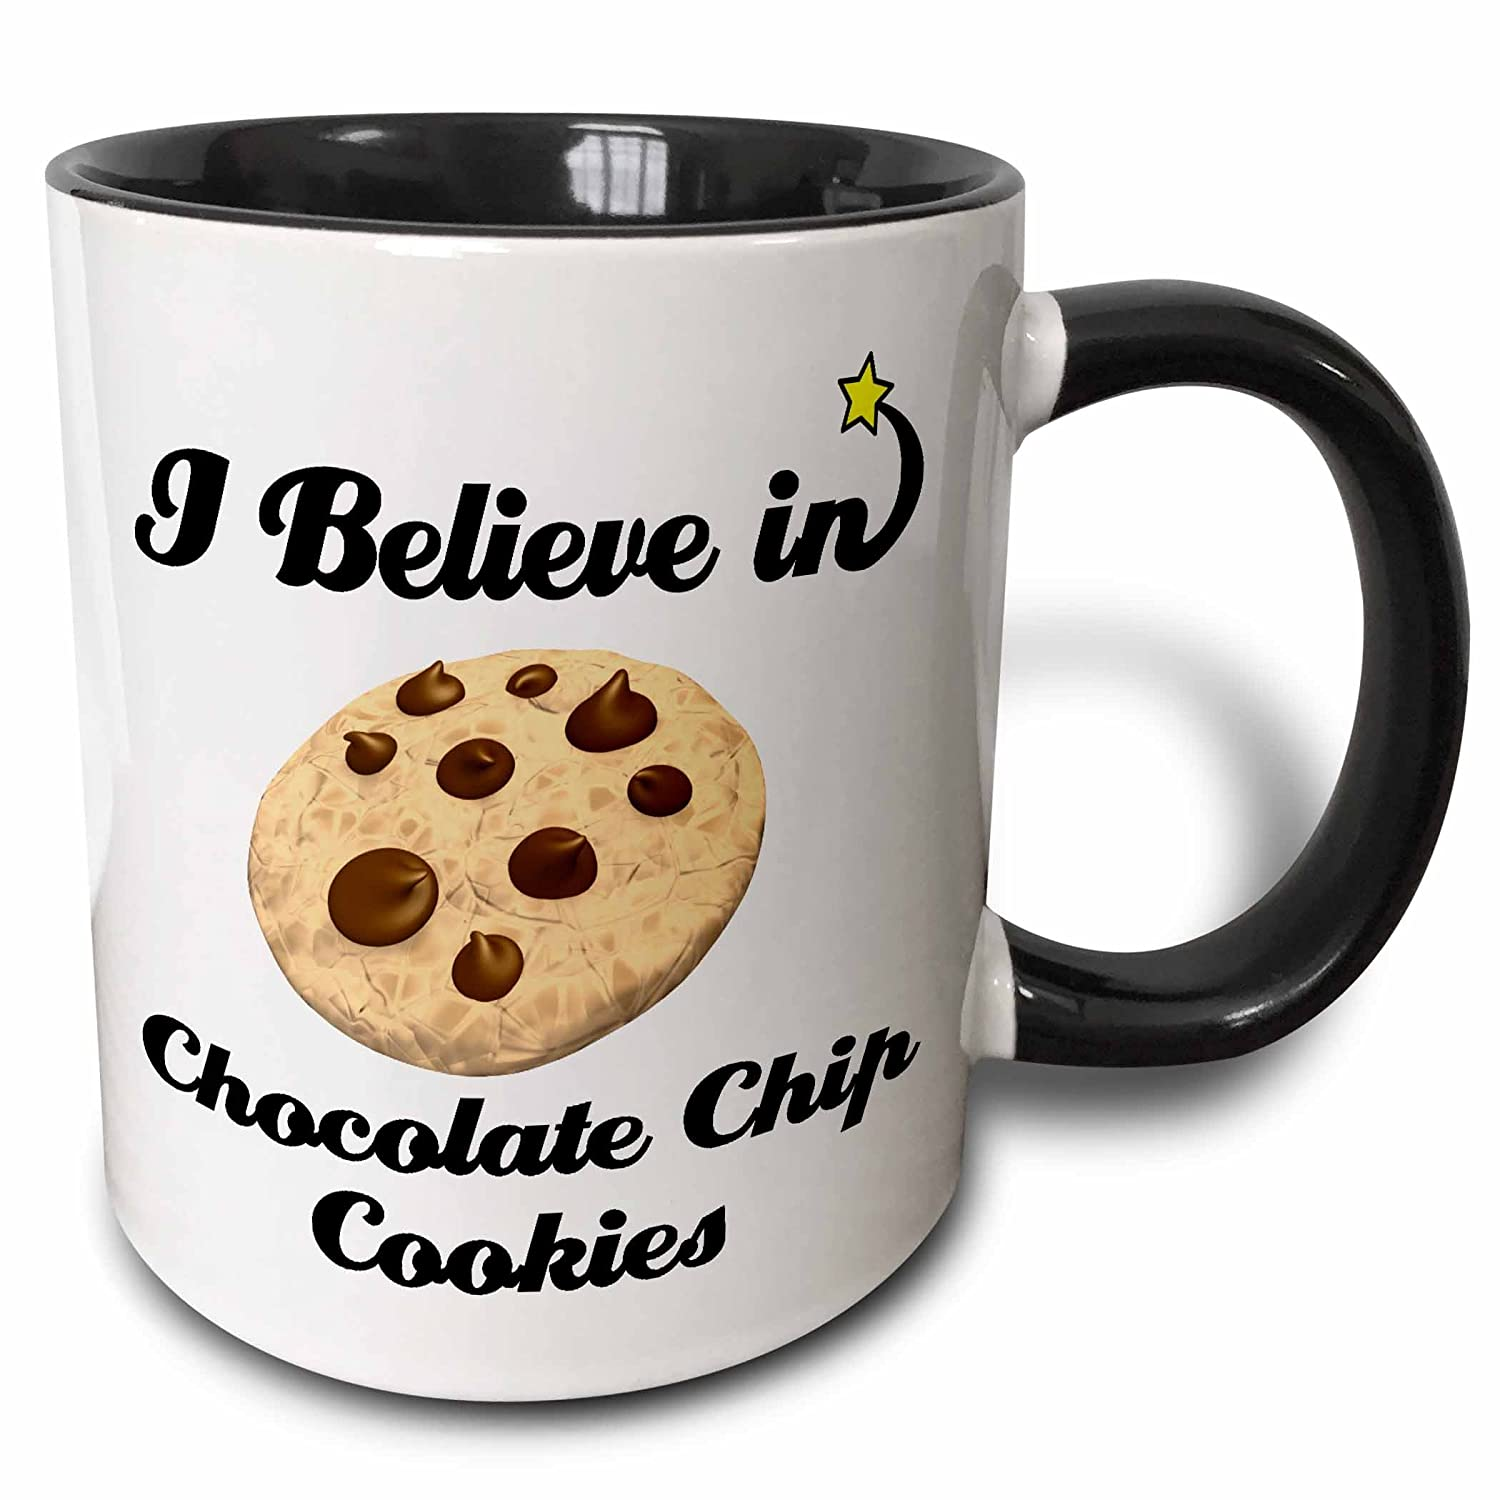 c37895cc9cda 3dRose 105030 4 I I Believe In Chocolate Chip Cookies Ceramic Mug 11oz  Black White